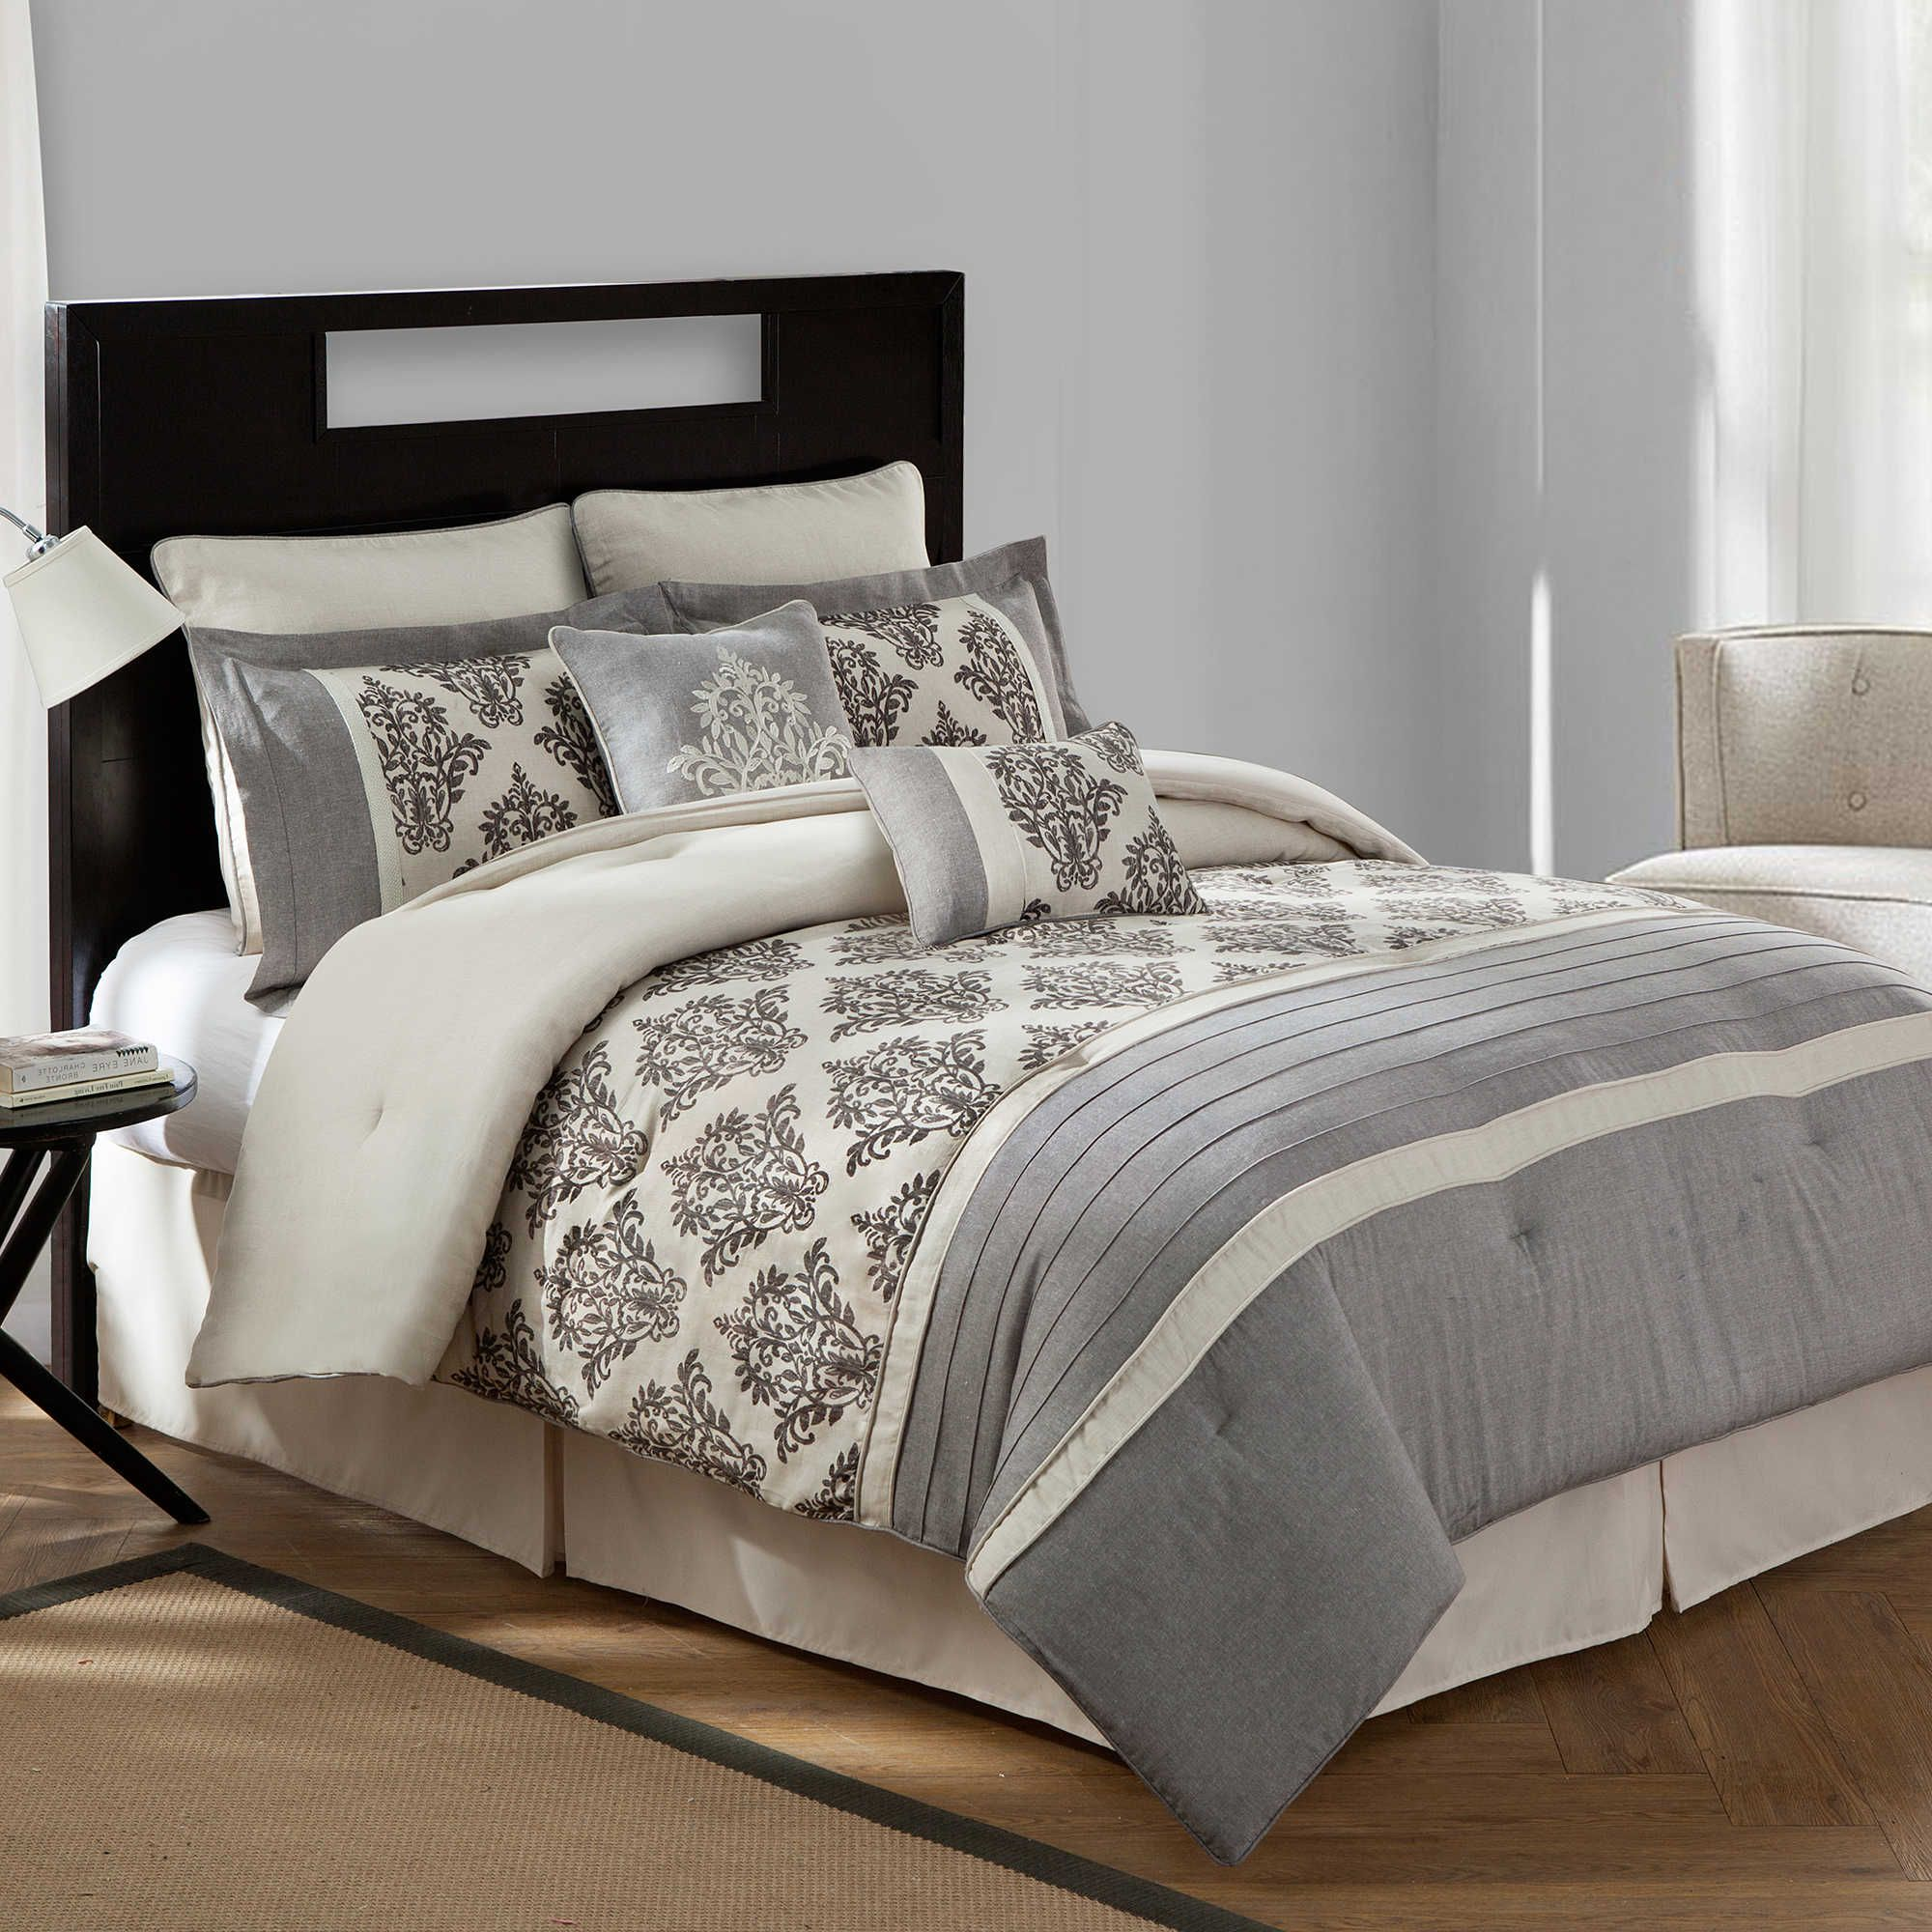 comforter bedding linens to set taupe waterford click by p hazeldene light expand linen